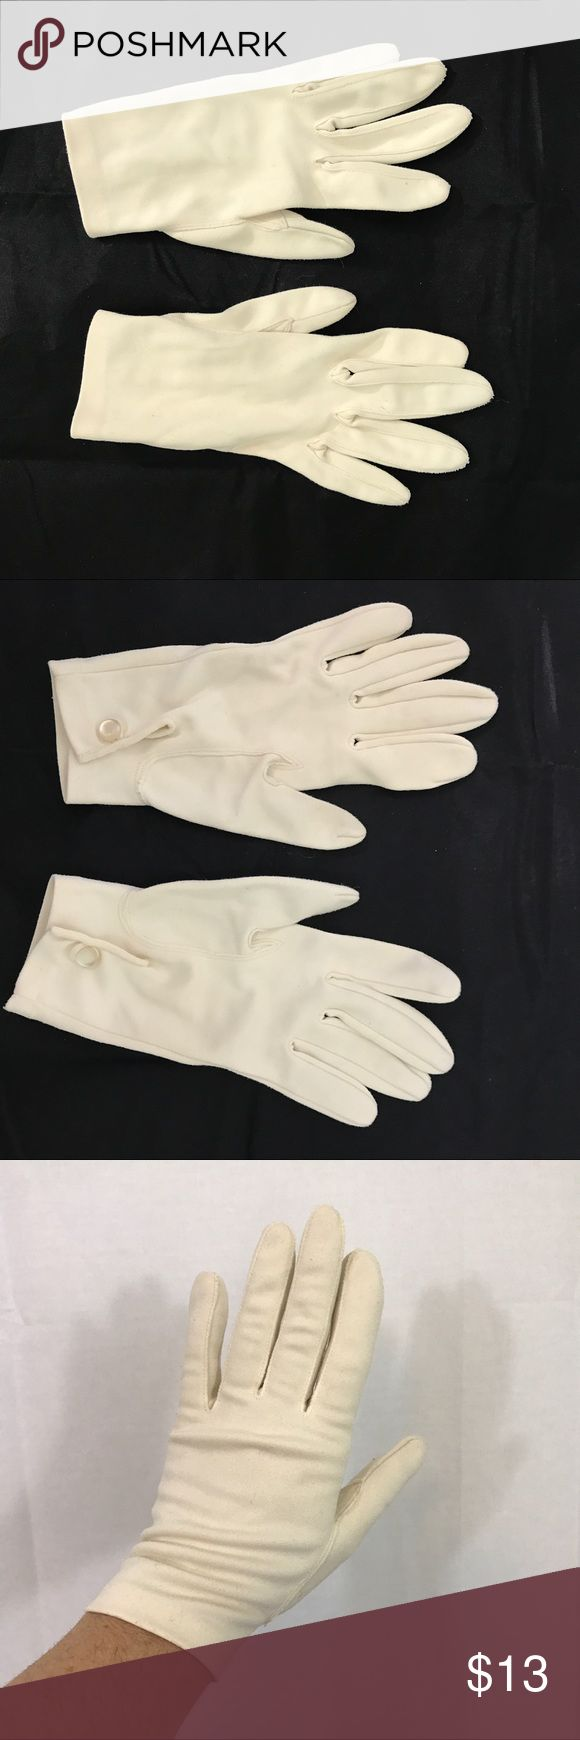 Driving gloves youtube - Vintage Ivory Wrist Driving Gloves 6 1 2